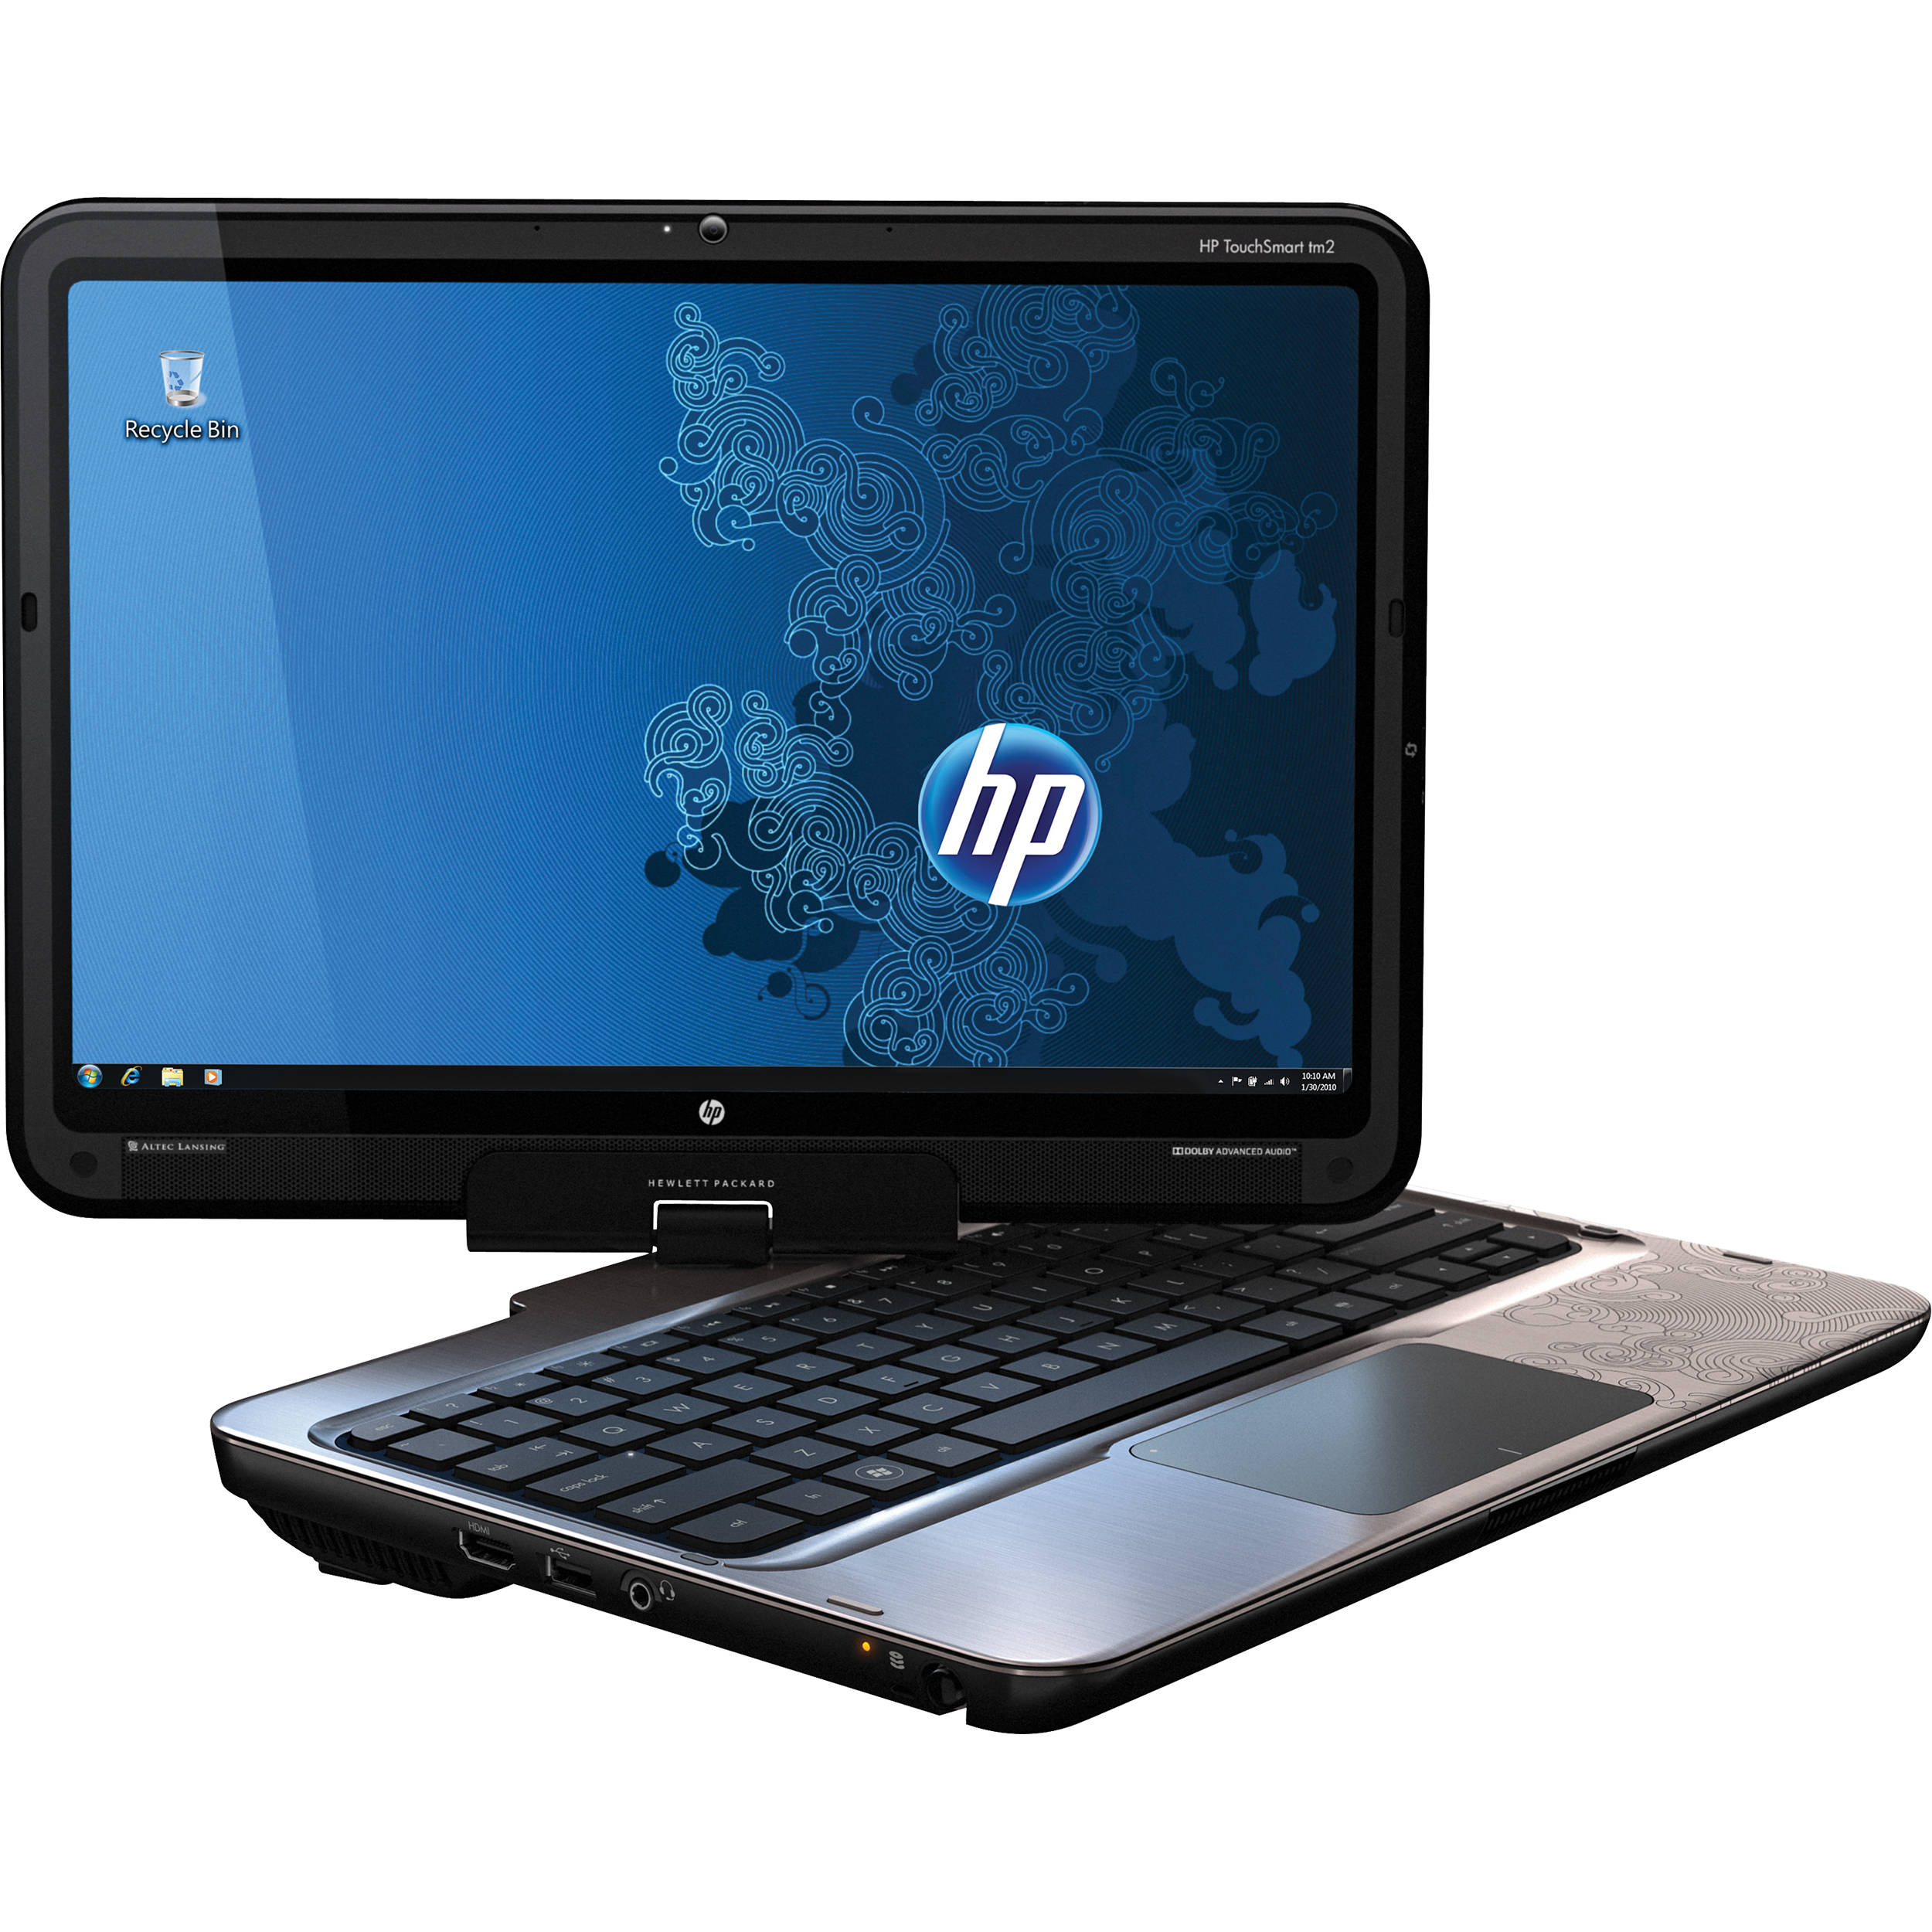 Hp touchsmart tm2 2150us 12 1 tablet notebook xg892ua aba for Notebook tablet